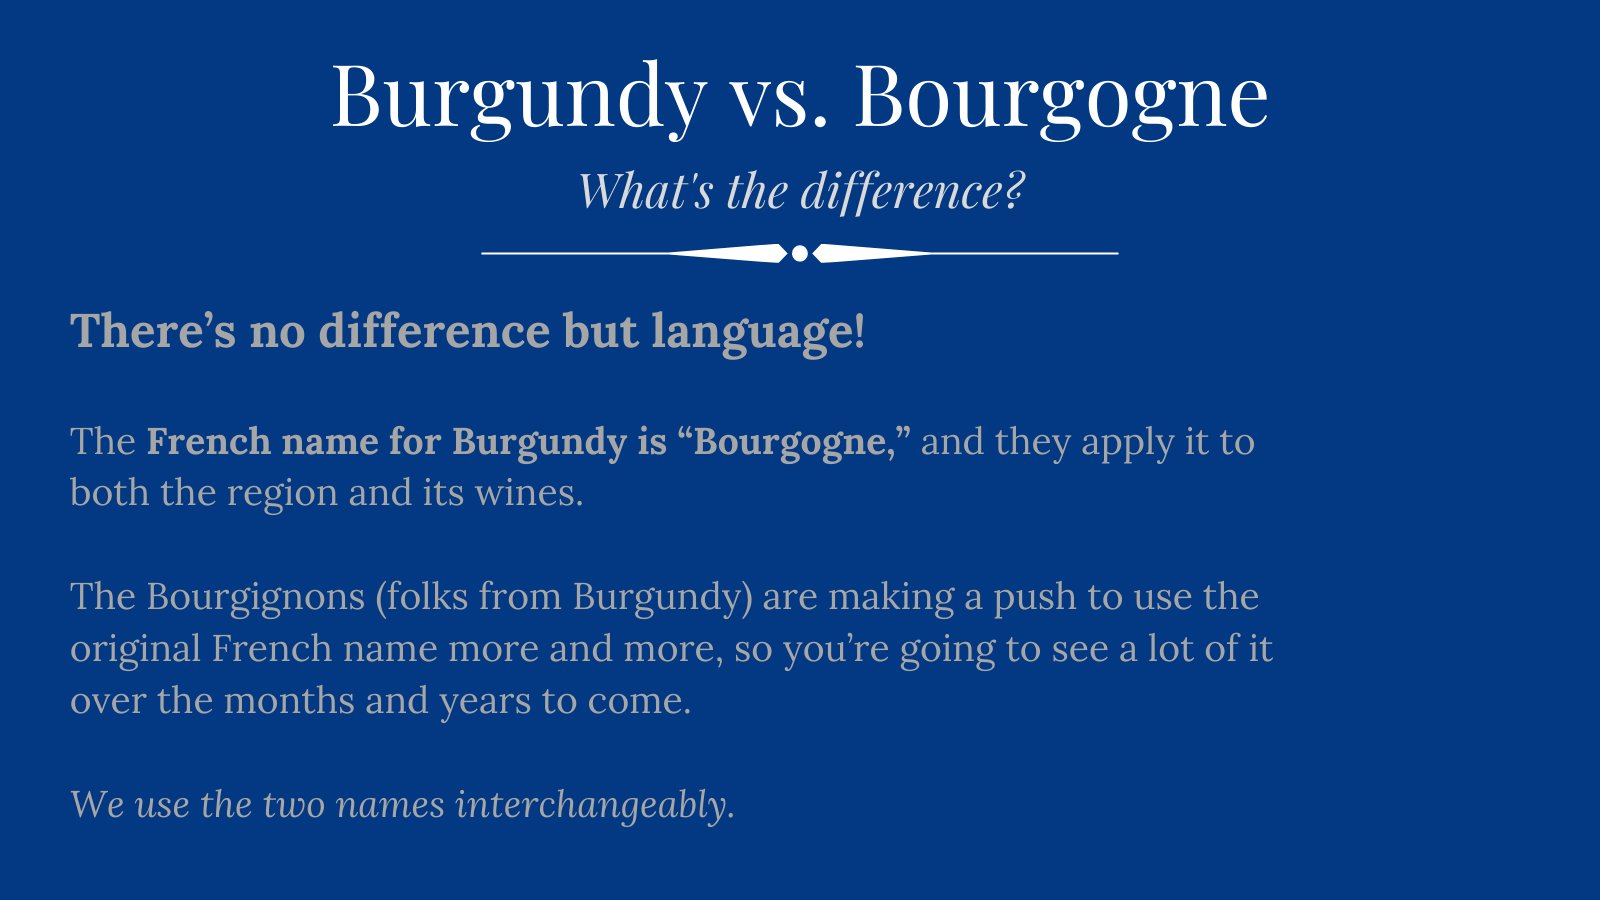 Burgundy vs. Bourgogne: What's the Difference?